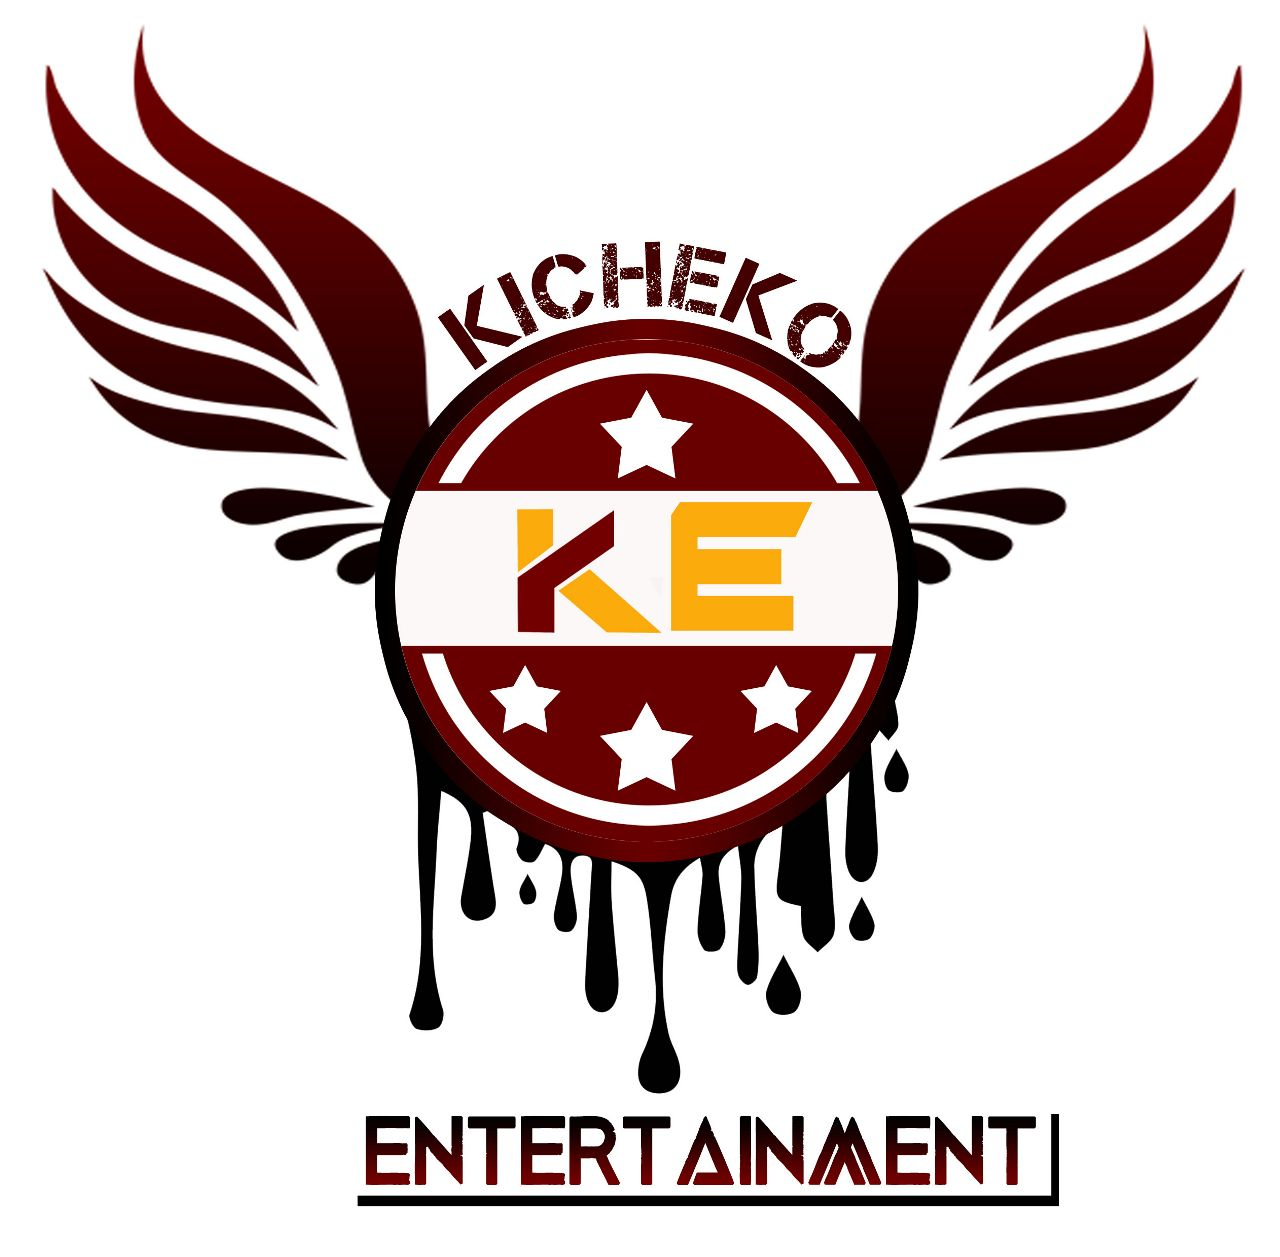 Kicheko Music - manyo lee - mwendo wa pushap